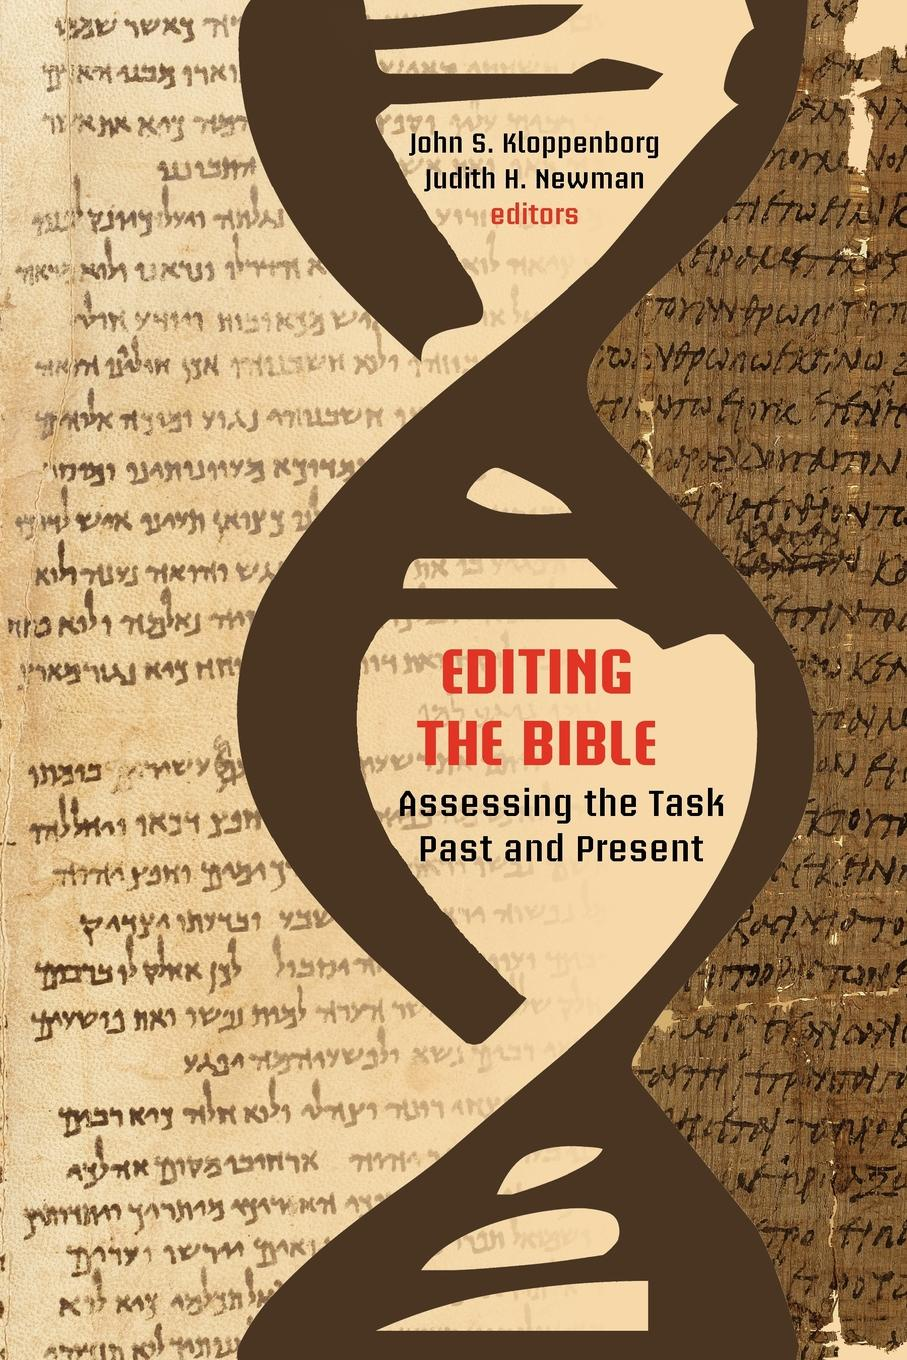 Editing the Bible. Assessing the Task Past and Present assessing creativity